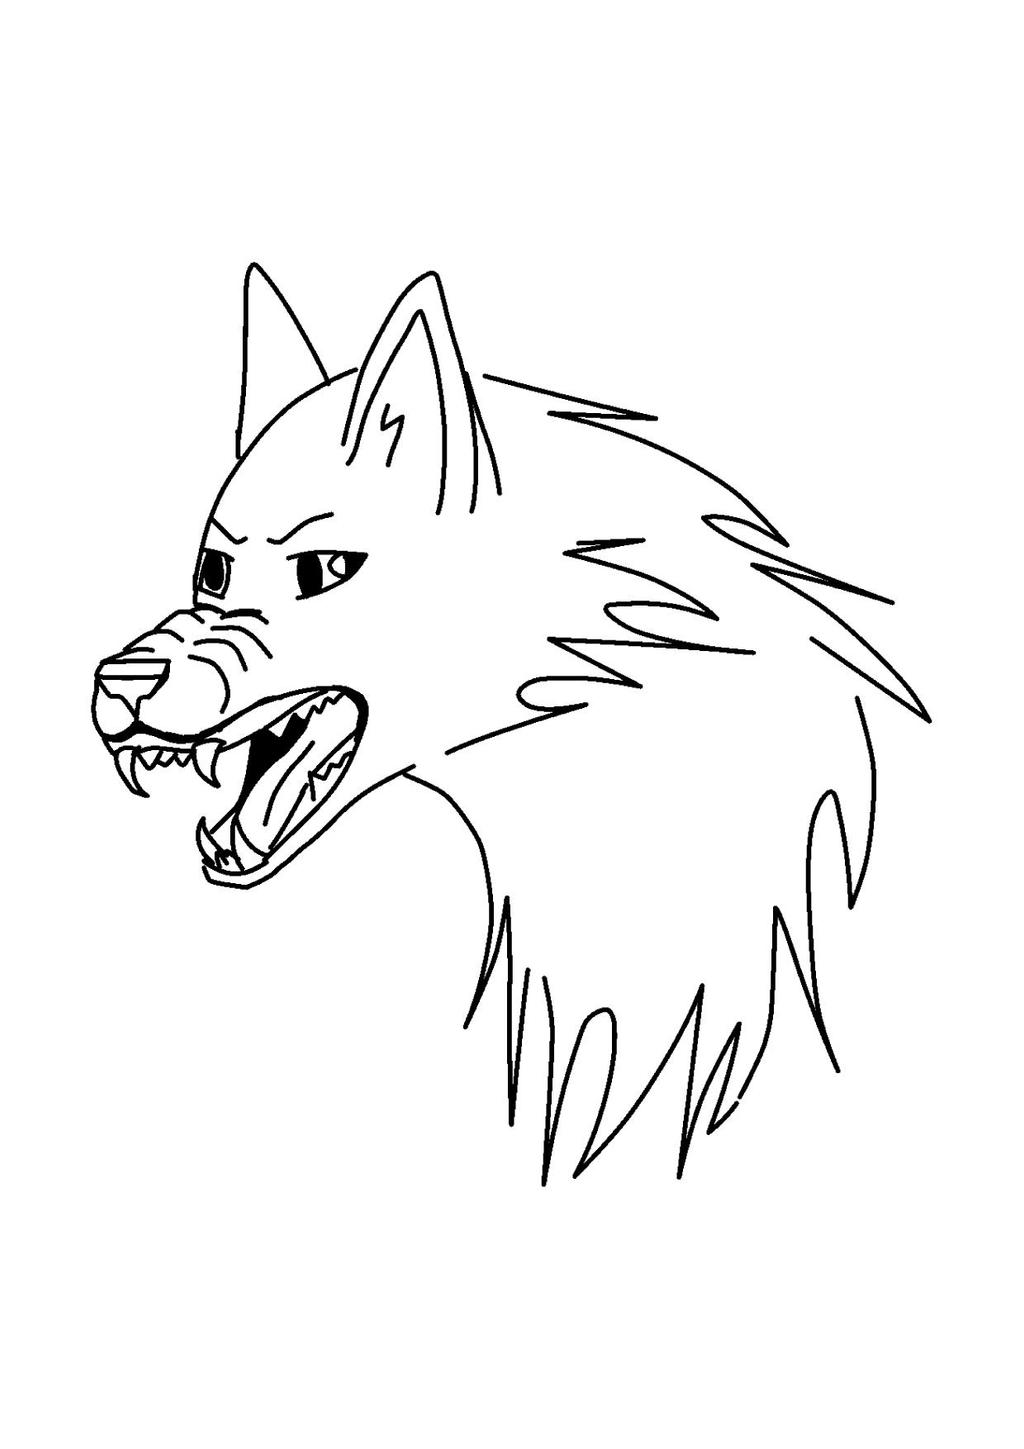 mad wolf drawings - photo #17